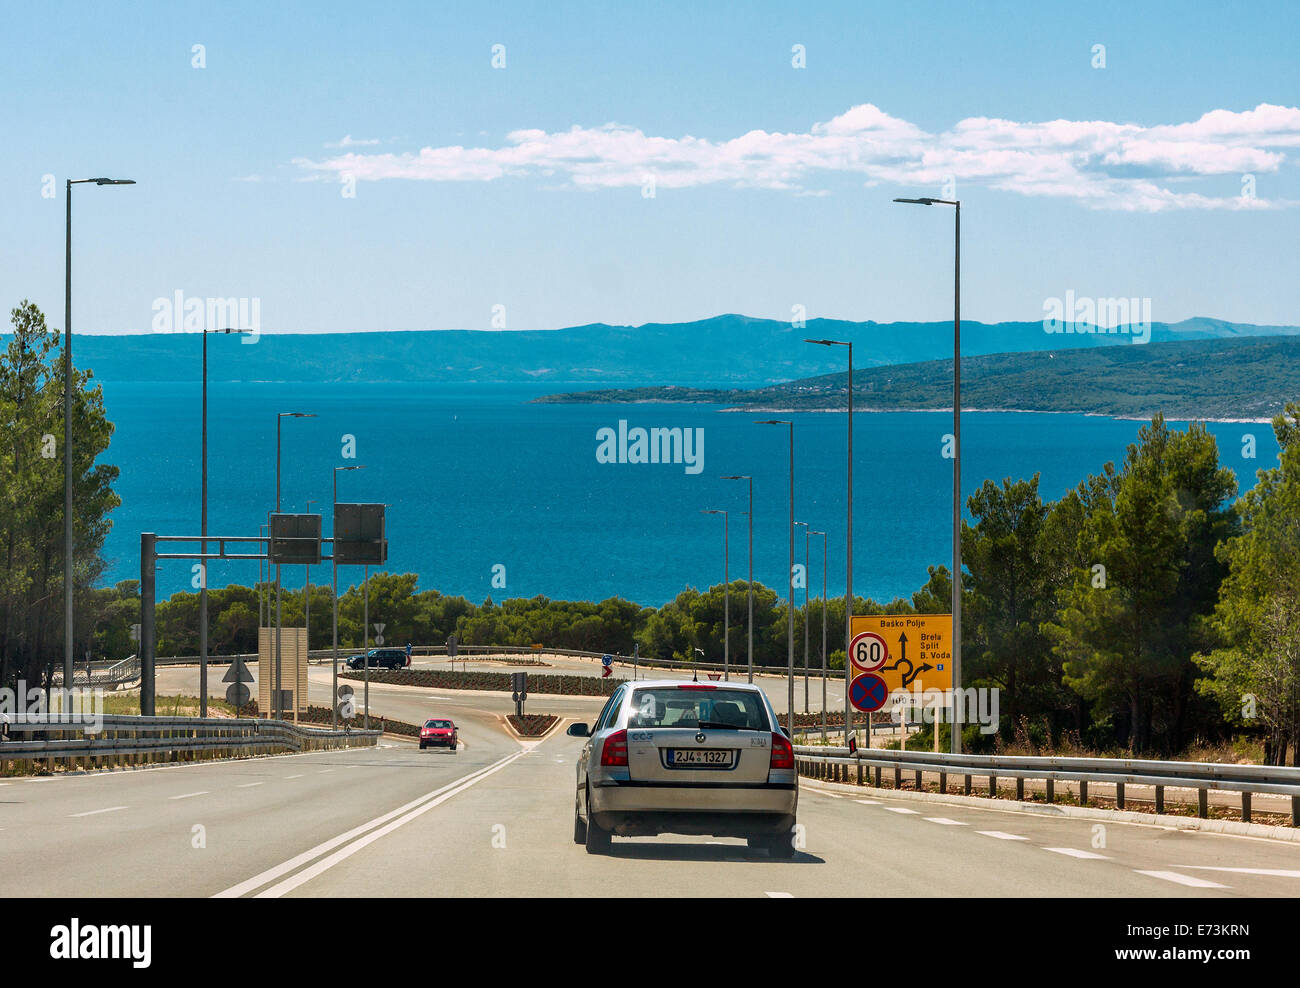 Cars in Baska Voda, Croatia - Stock Image